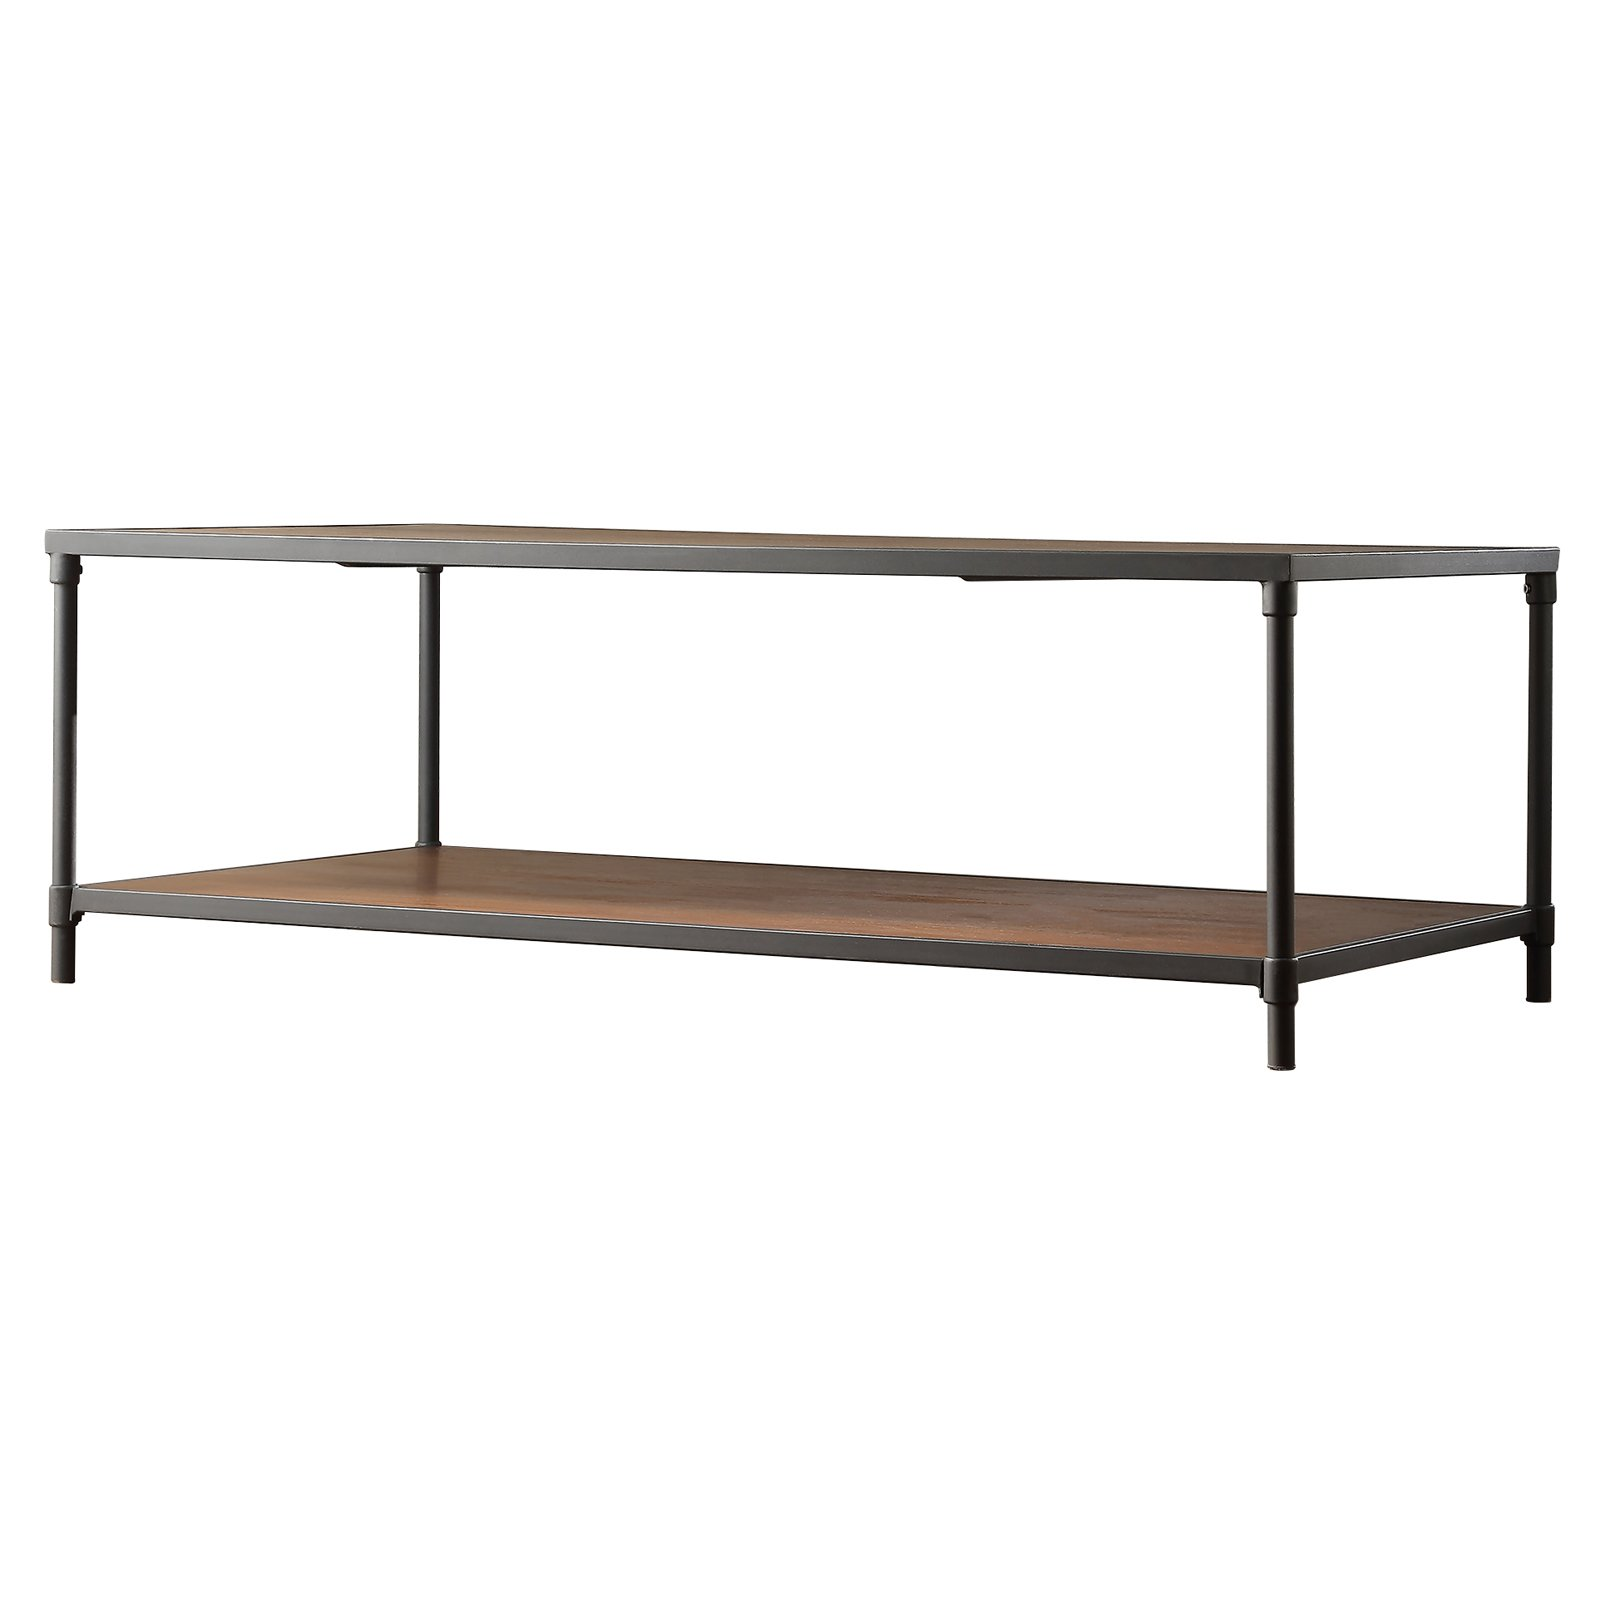 Weston Home Cocktail Table Walmartcom - 6ft stainless steel table